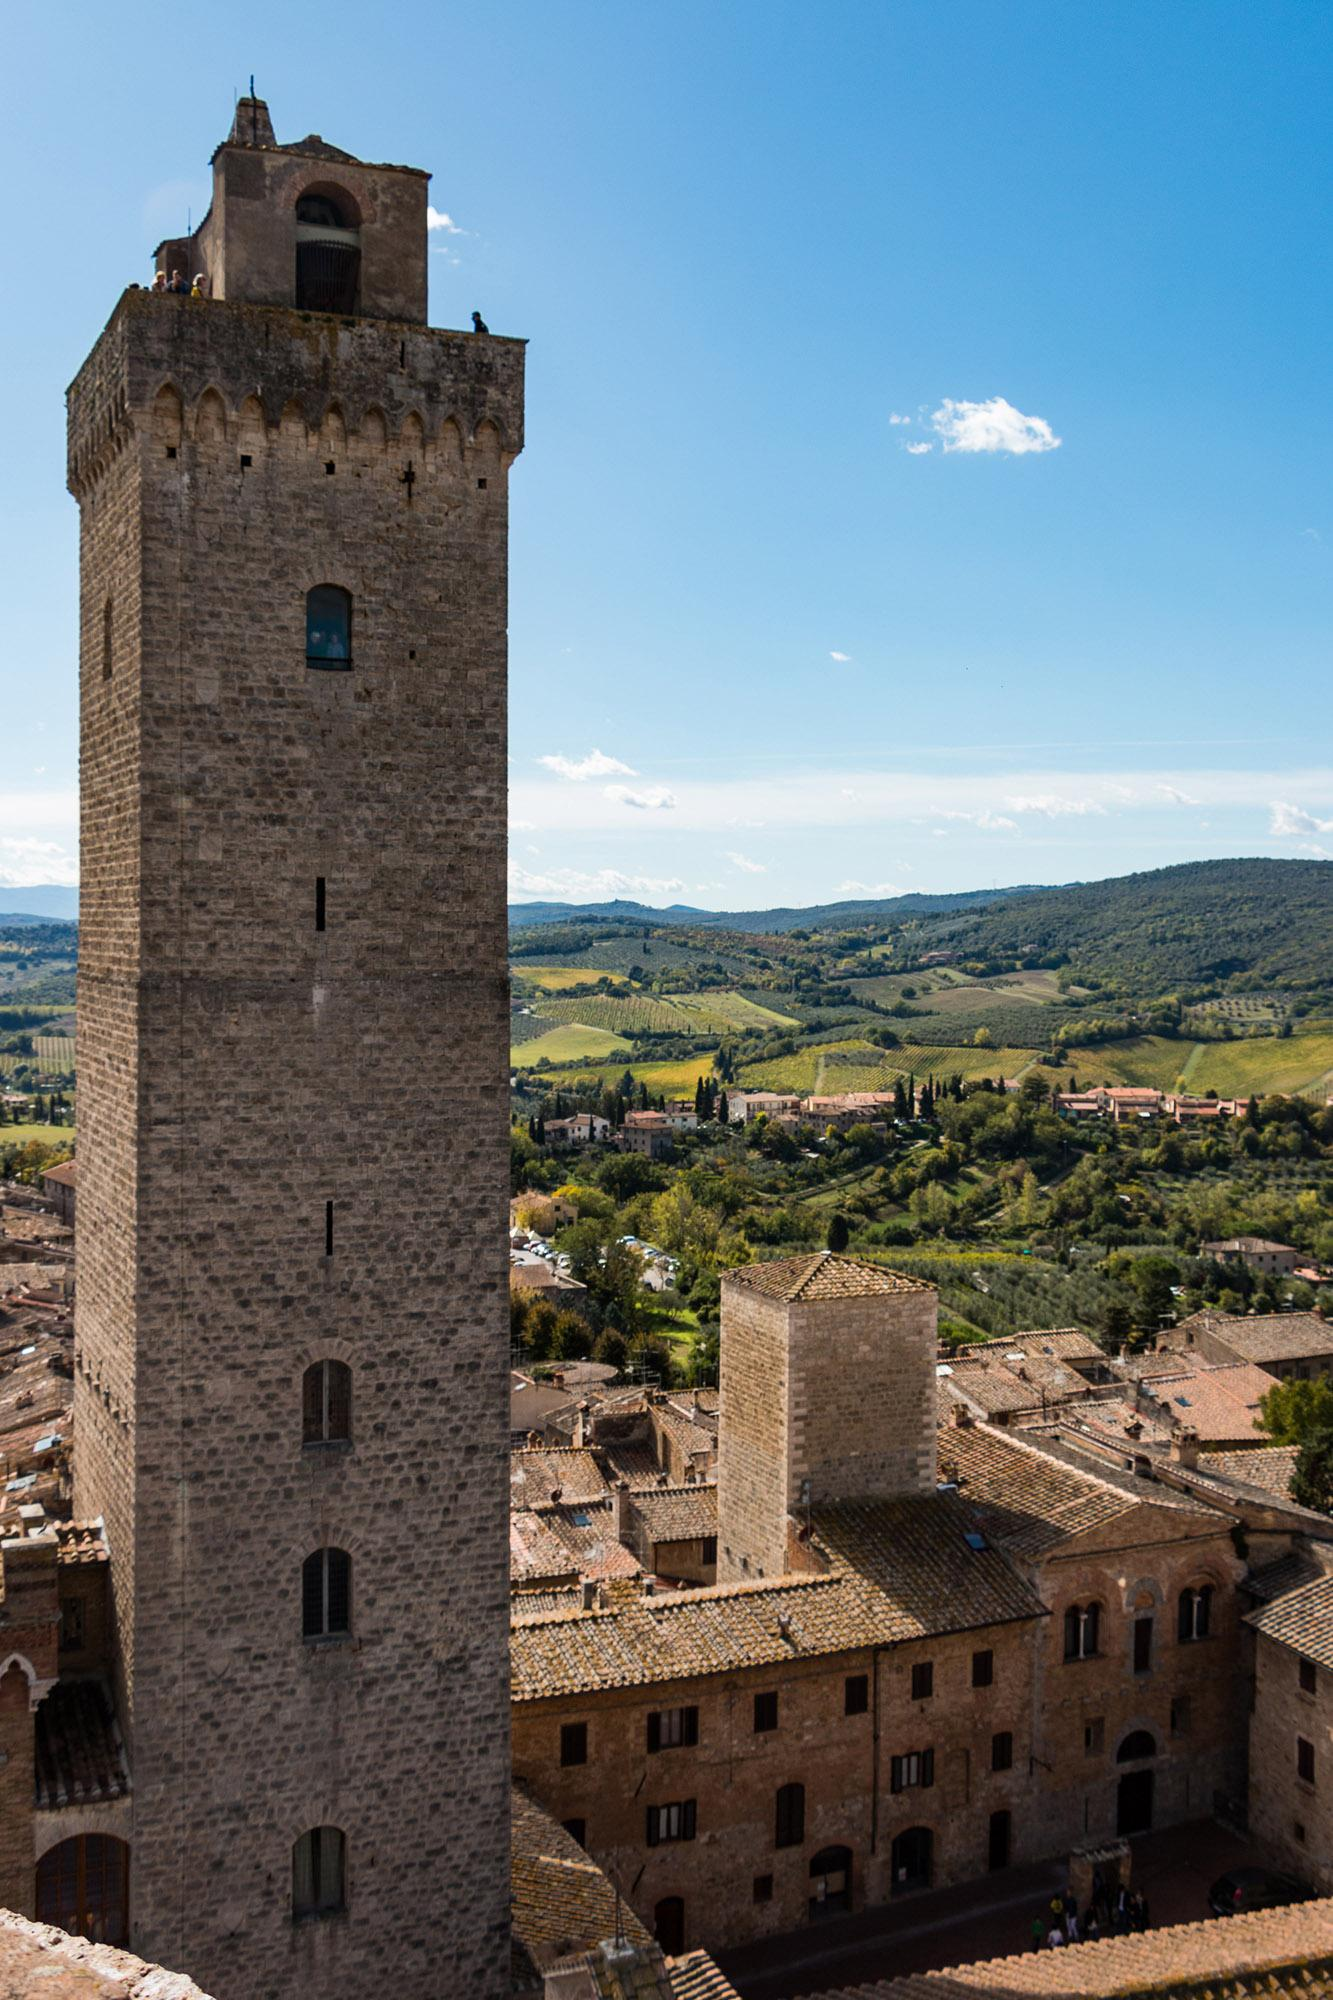 The 54-metre Torre Grossa is the highest tower in the historical centre of San Gimignano. - © Comune di San Gimignano